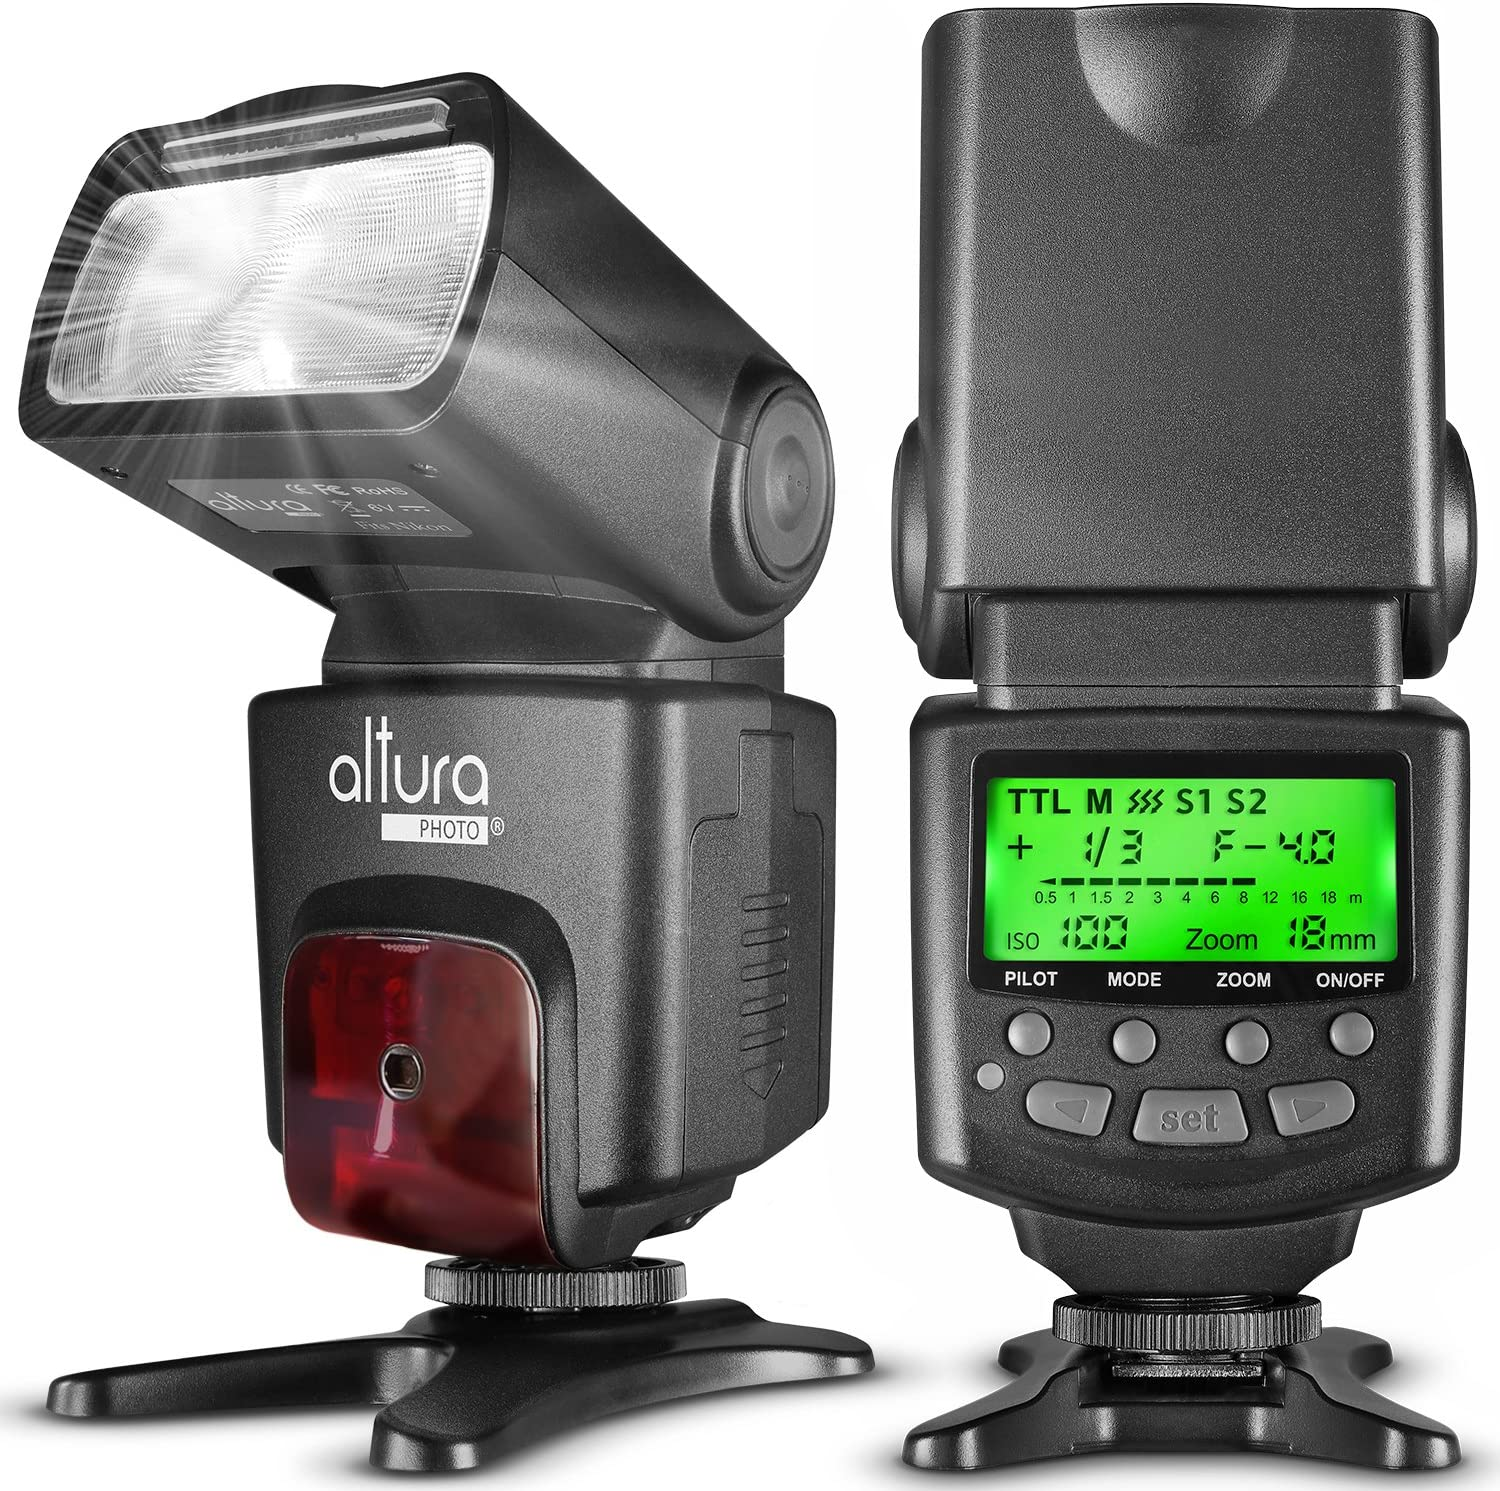 Pro Series Digital SLR Auto-Focus//Auto Power Zoom TTL Flash w//LCD Display Universal Mini Portable Folding Bracket 4 AA Battery Charger Deluxe Accessories Kit for Nikon D3000 D3100 D3200 D5000 D5100 D5200 D5300 D7000 D7100 D7200 D600 D610 D700 D800 D9